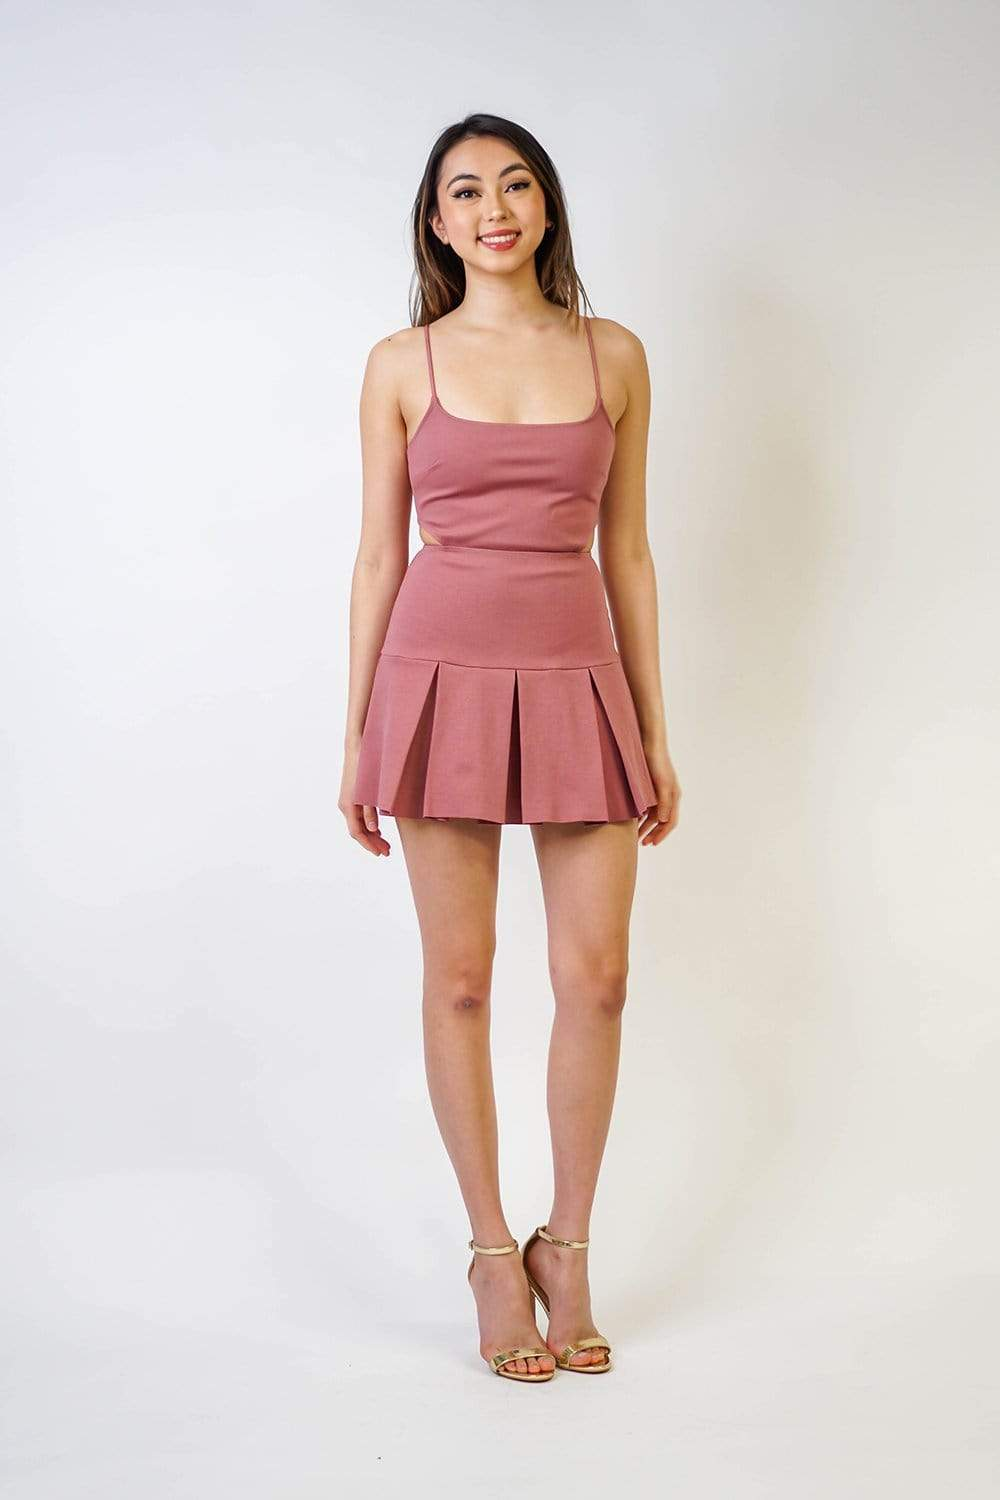 DRESS Square Neck Tennis Skirt Dress - Chloe Dao